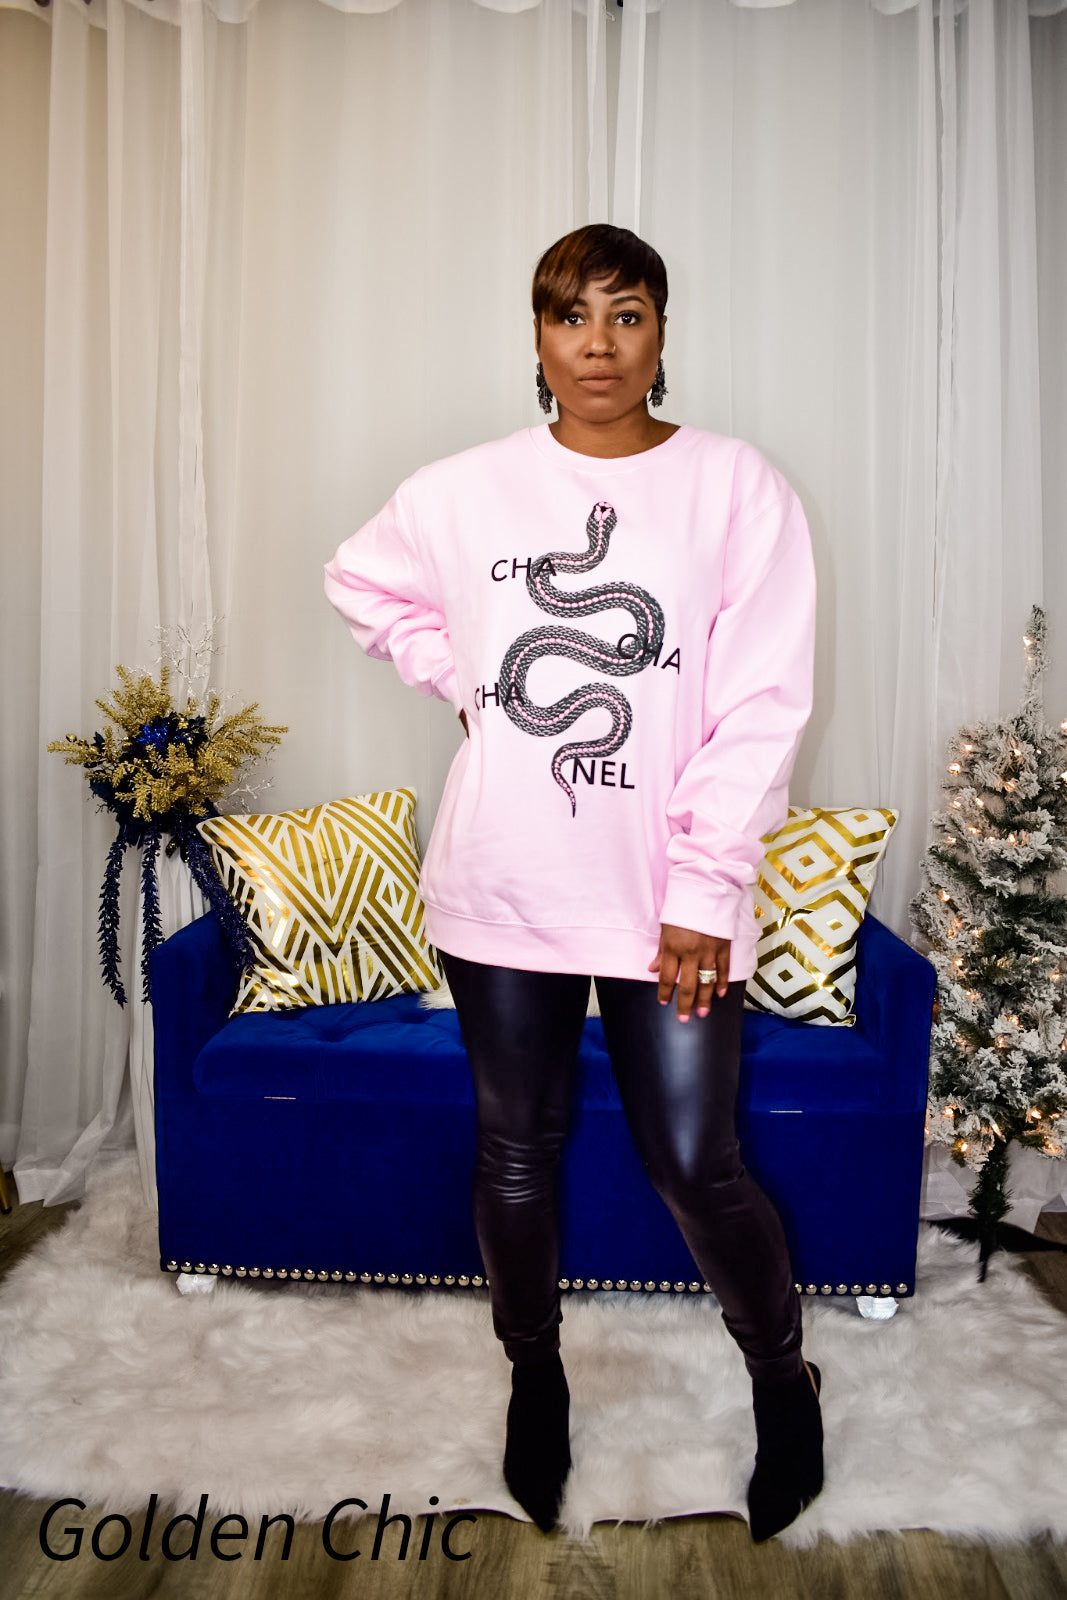 Cha-Chanel Sweatshirt